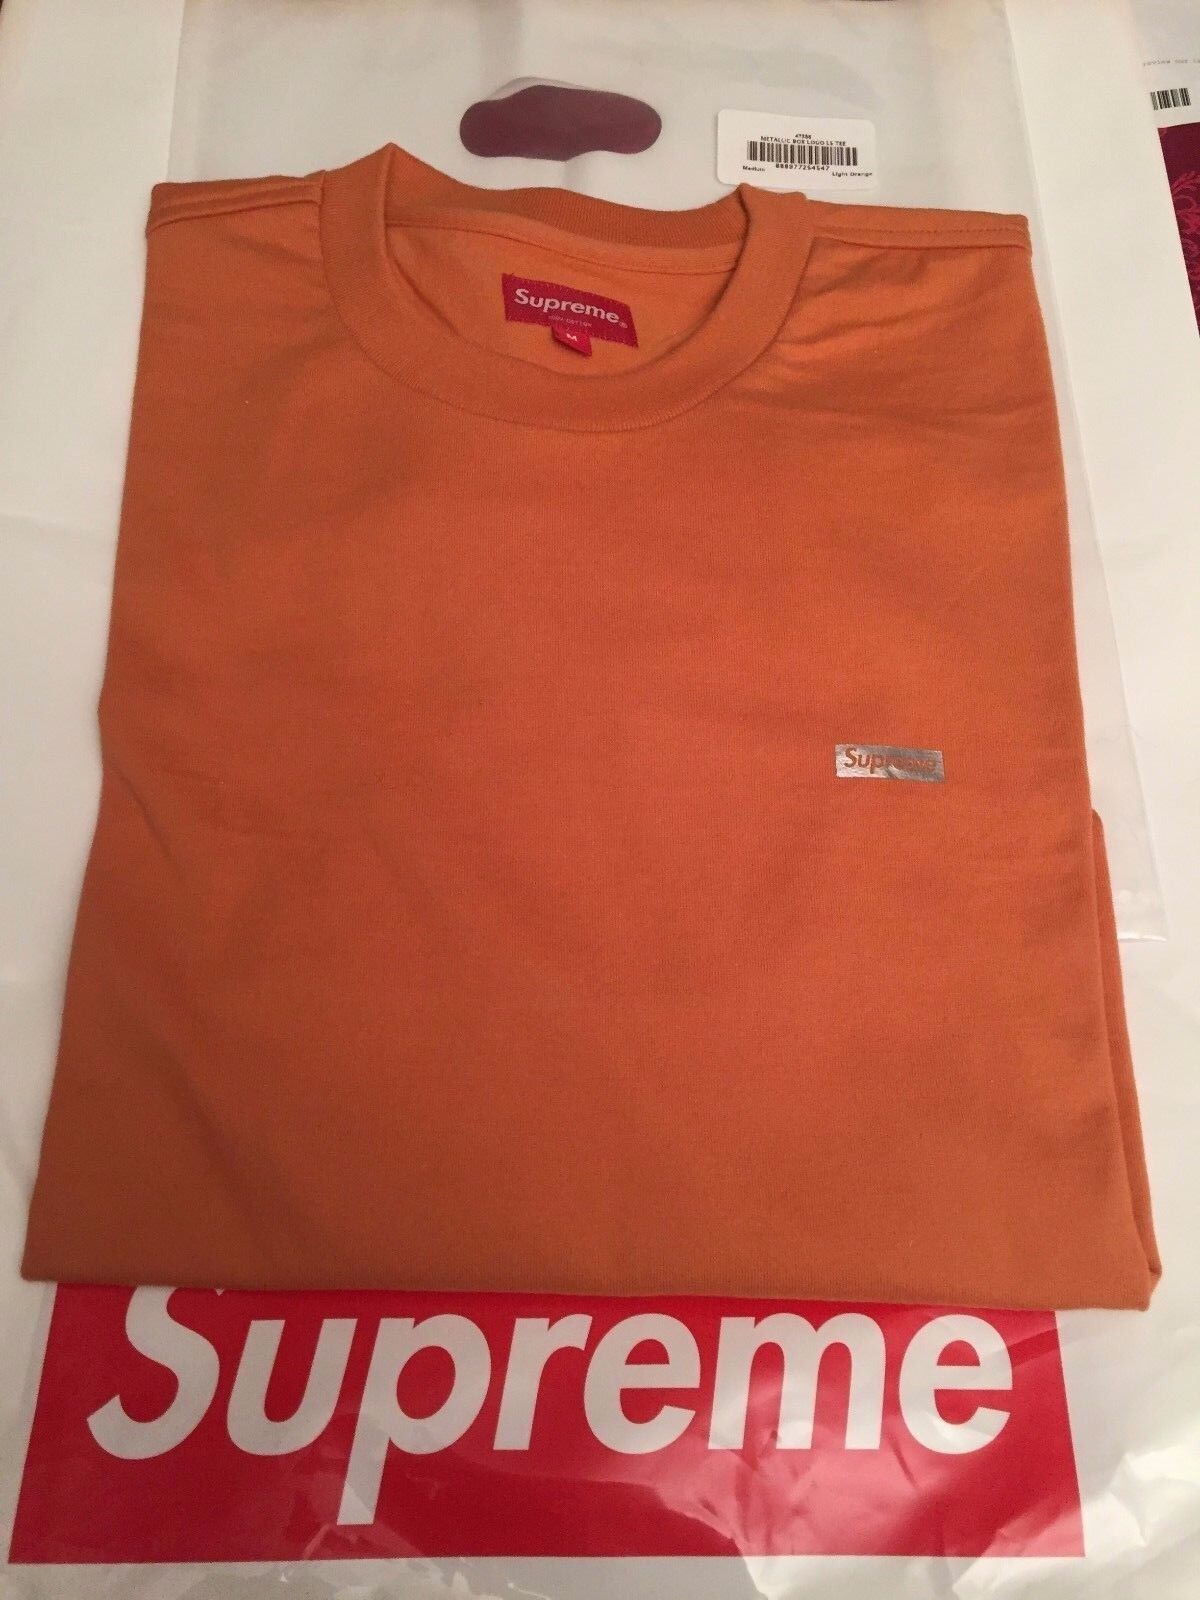 Supreme Metallic Box Logo L/S Tee Orange sz M - IN HAND READY TO SHIP DSWT FW17